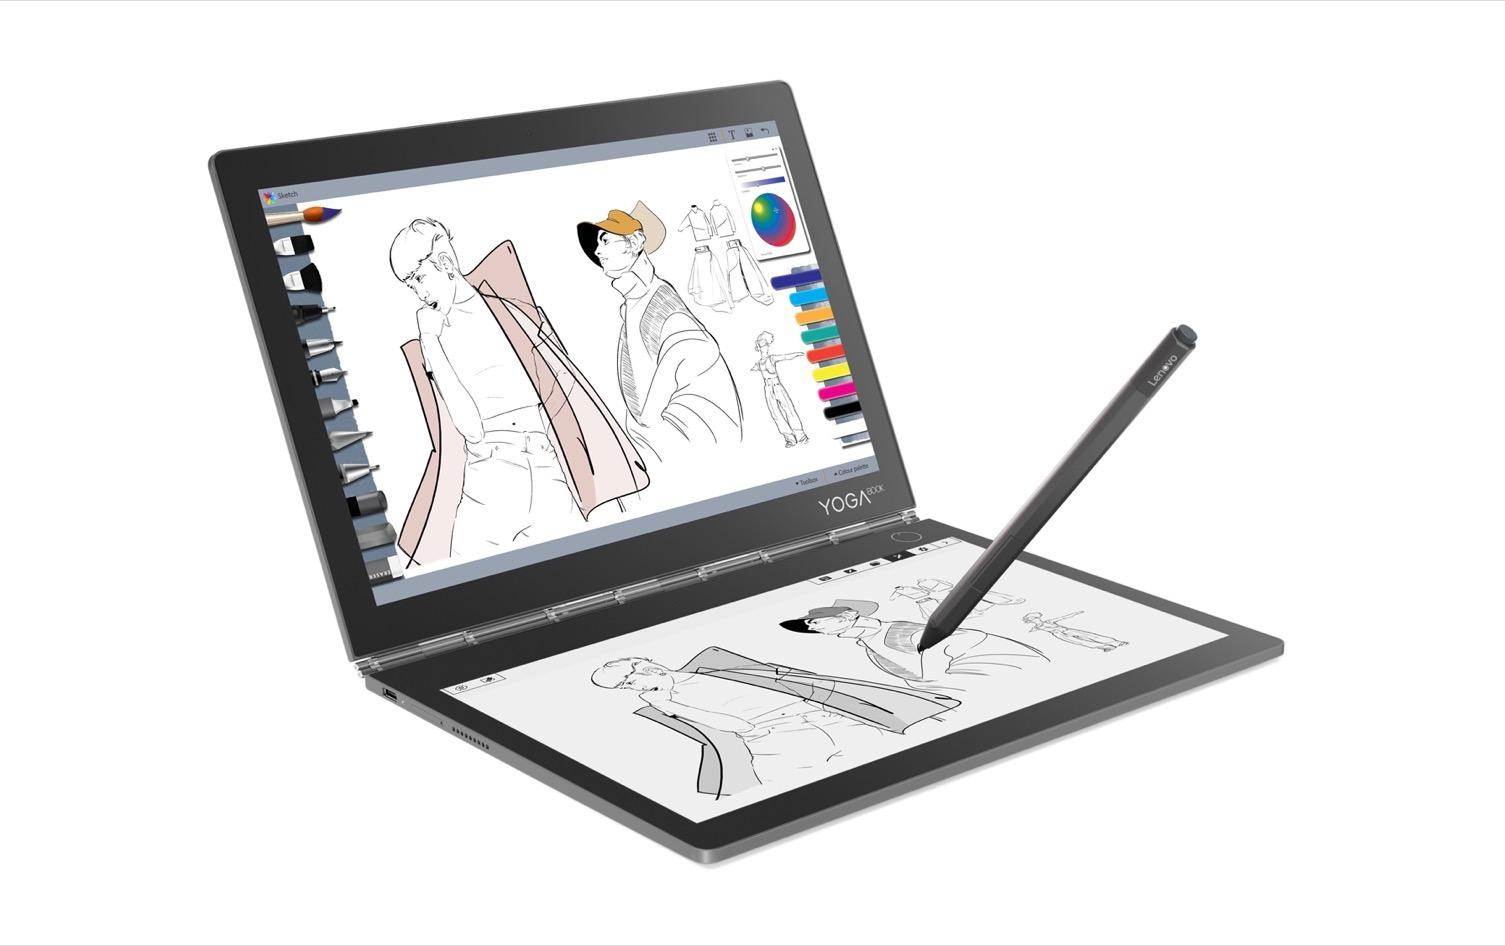 Lenovo Yoga Book C930 Vs Original Yoga Book What S New Slashgear